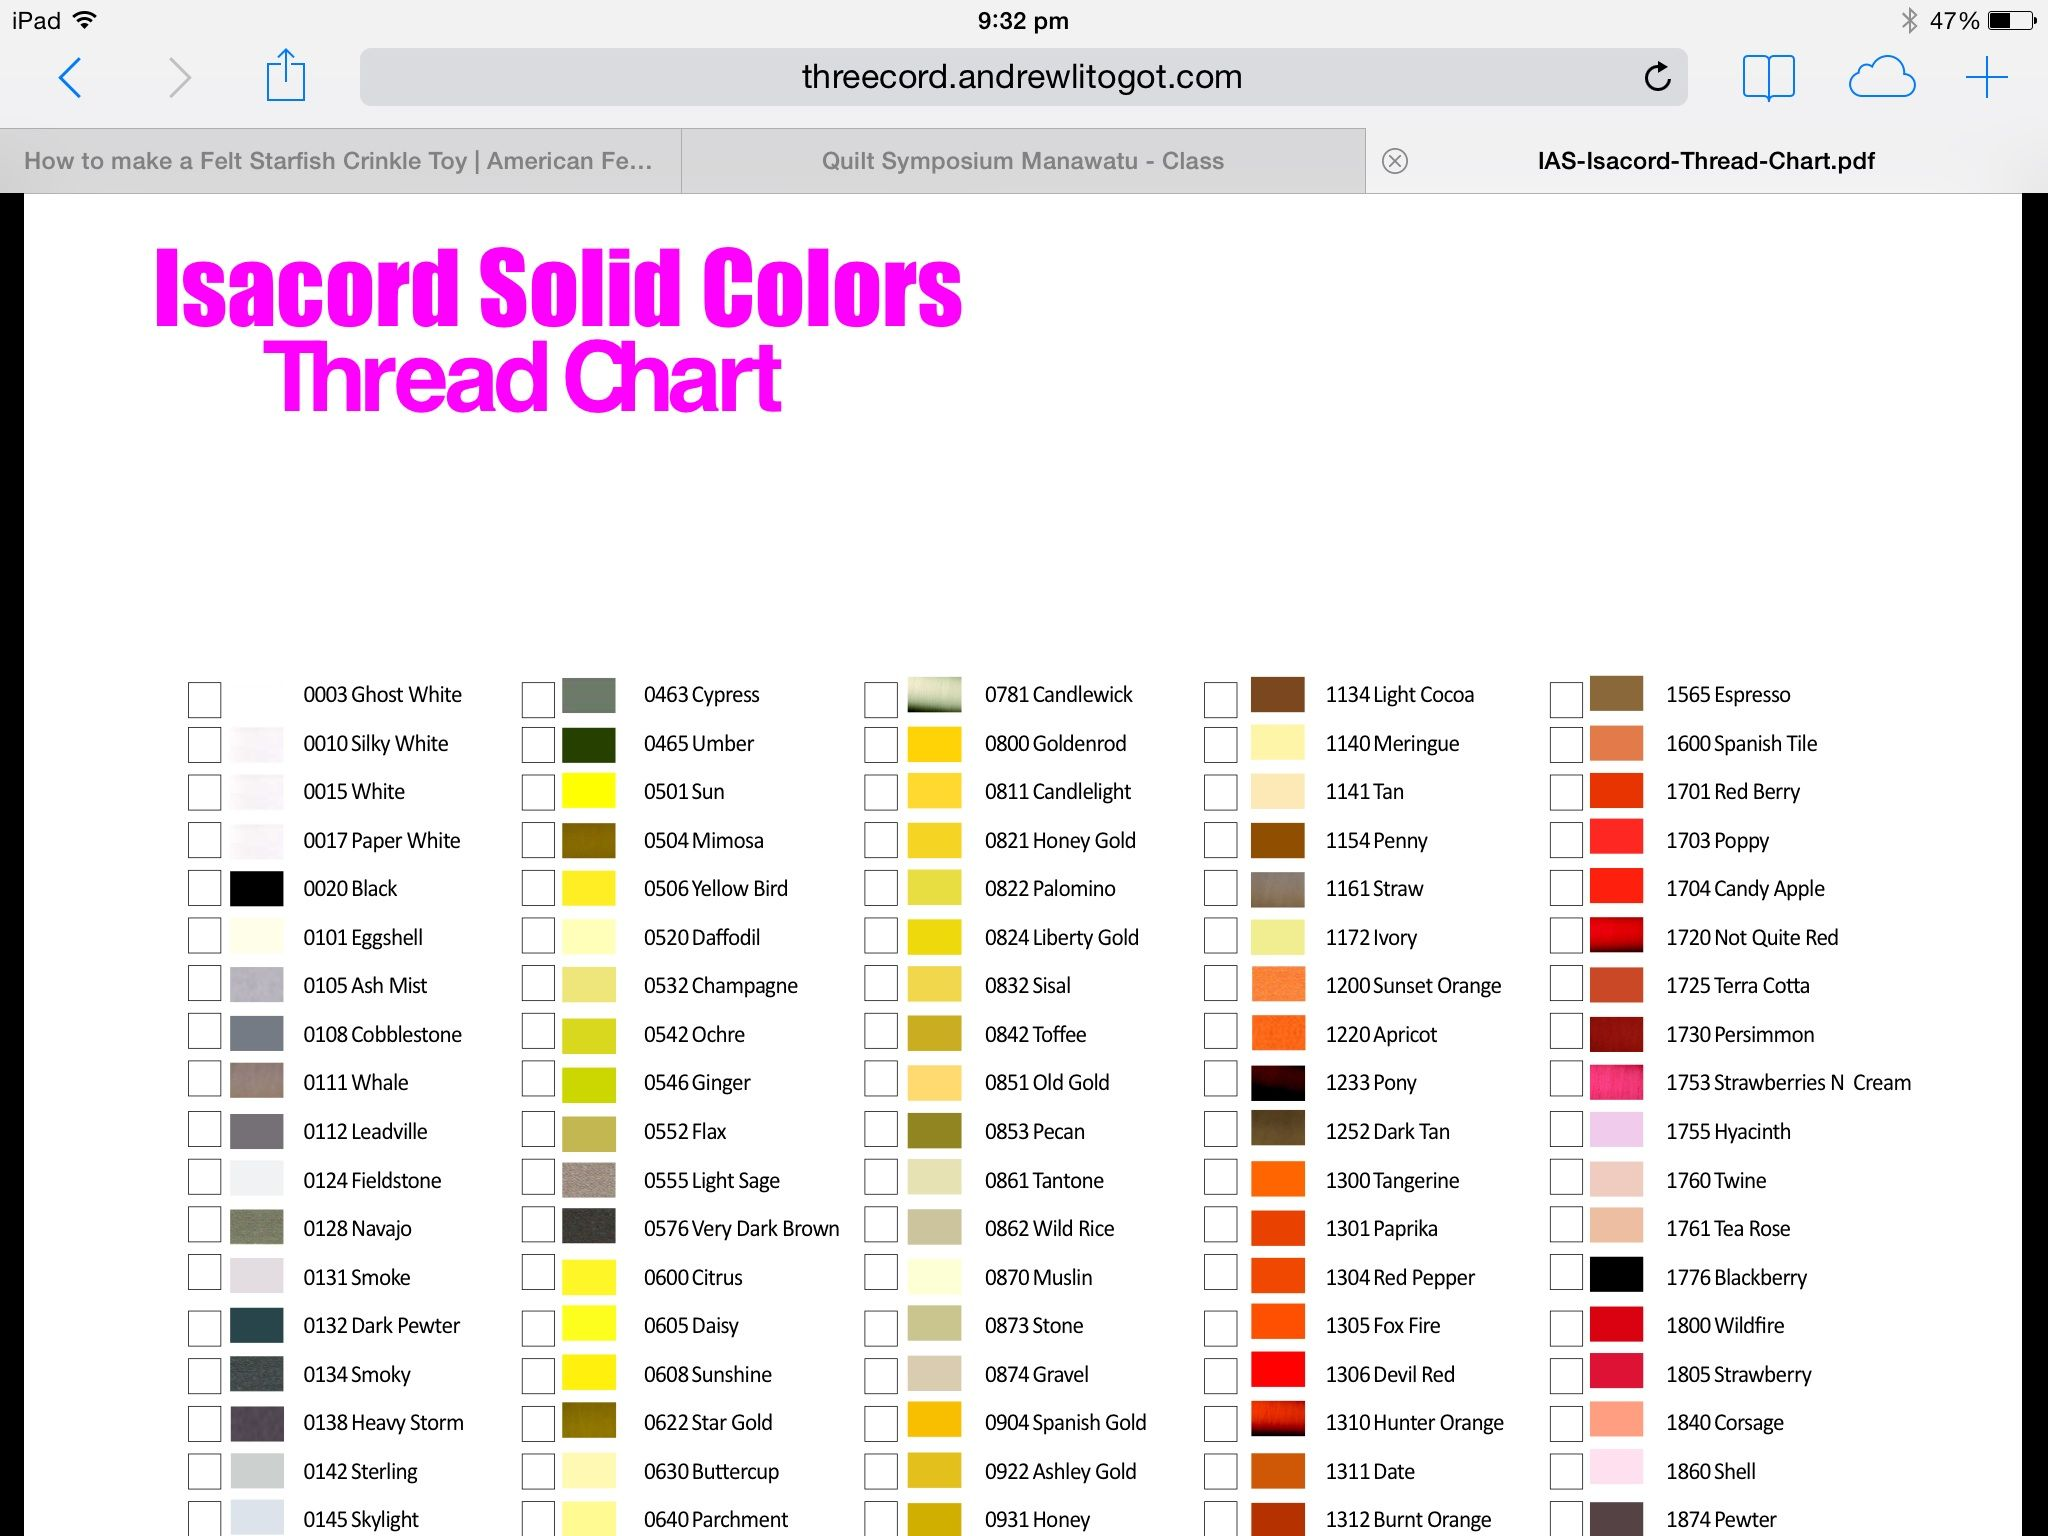 Isacord colours by name sewing everything pinterest chart isacord colours by name embroidery threadchartpdfcolours nvjuhfo Images